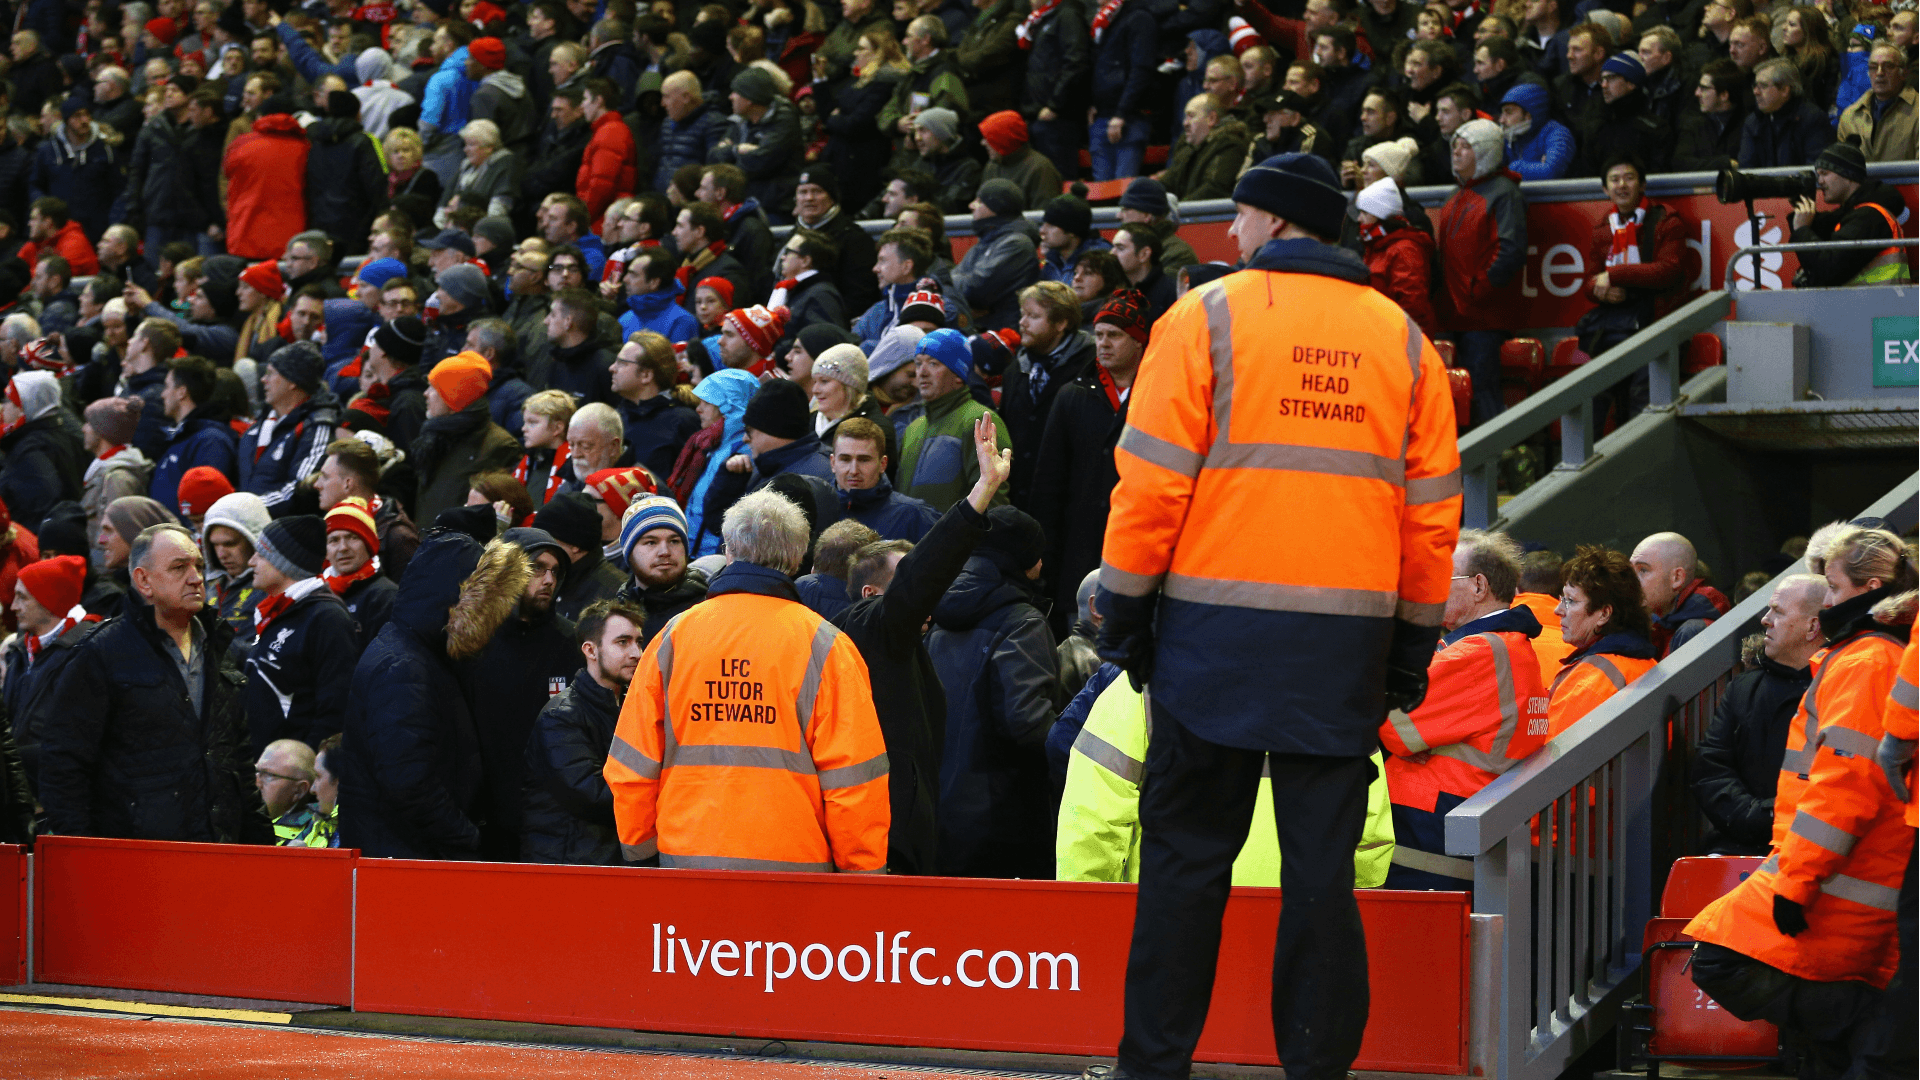 Liverpool fans walkout in protest